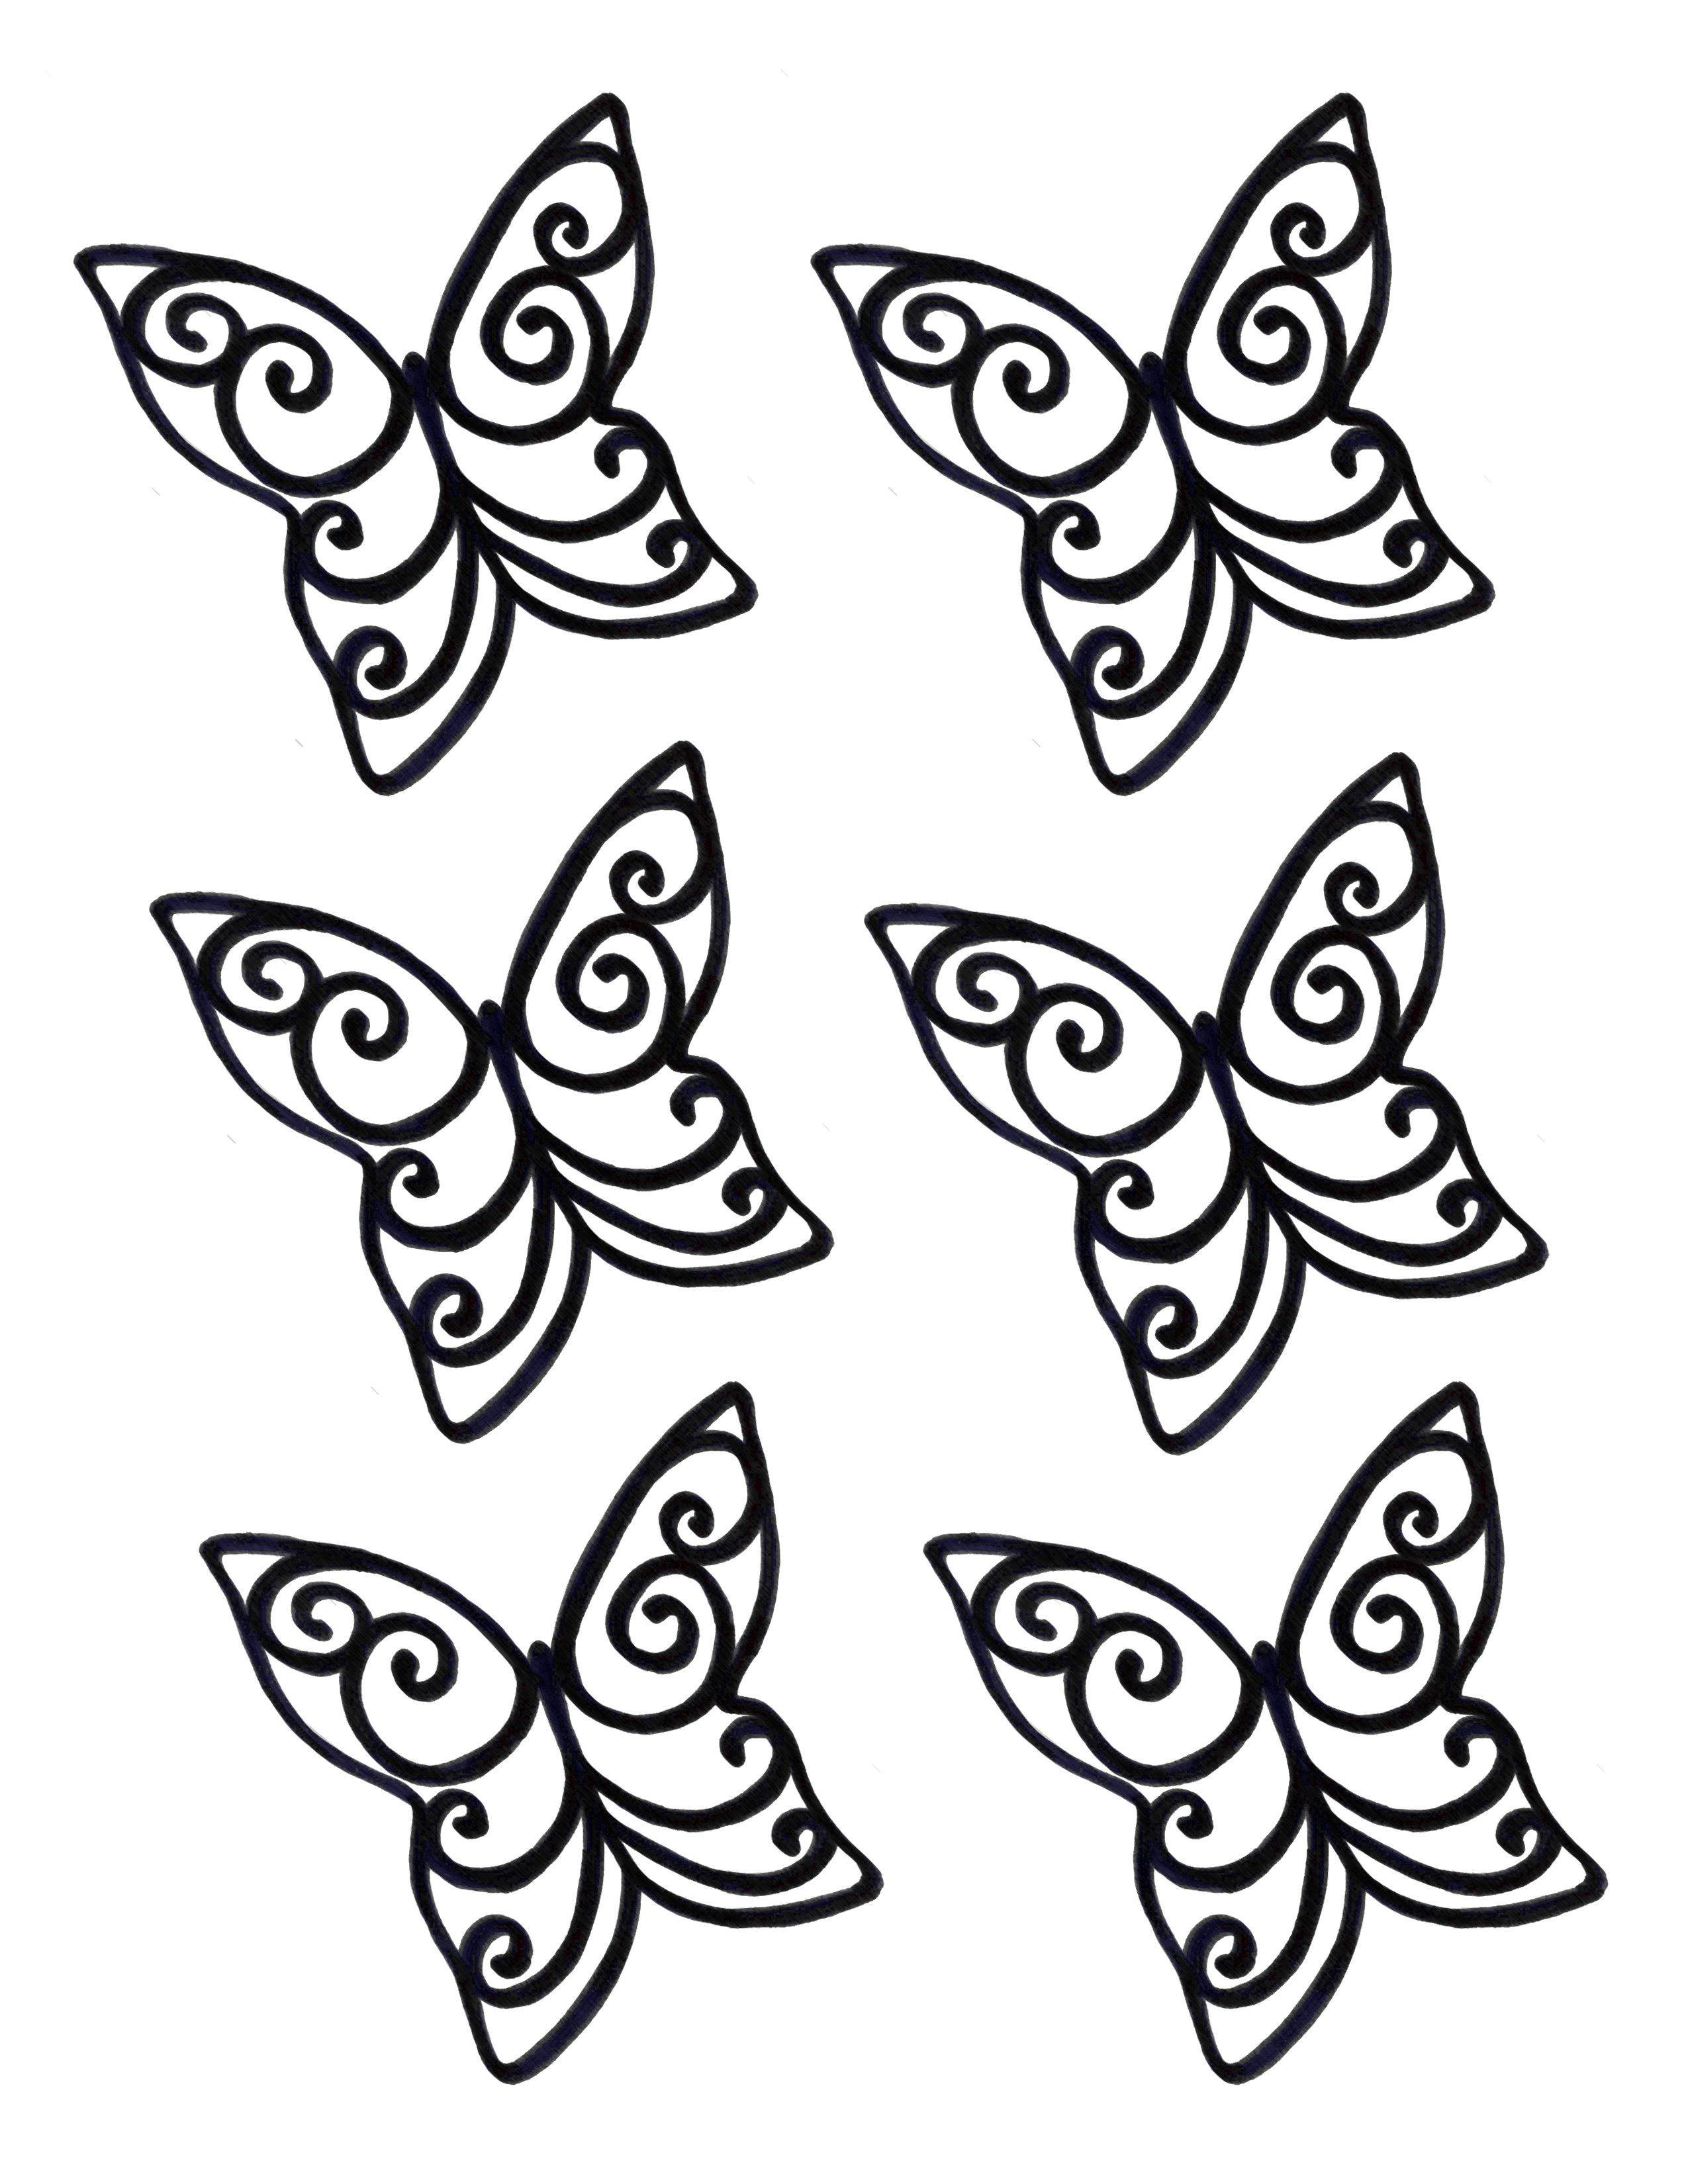 Cake Decorating Butterfly Template : This is a stencil that you can use to make your own ...